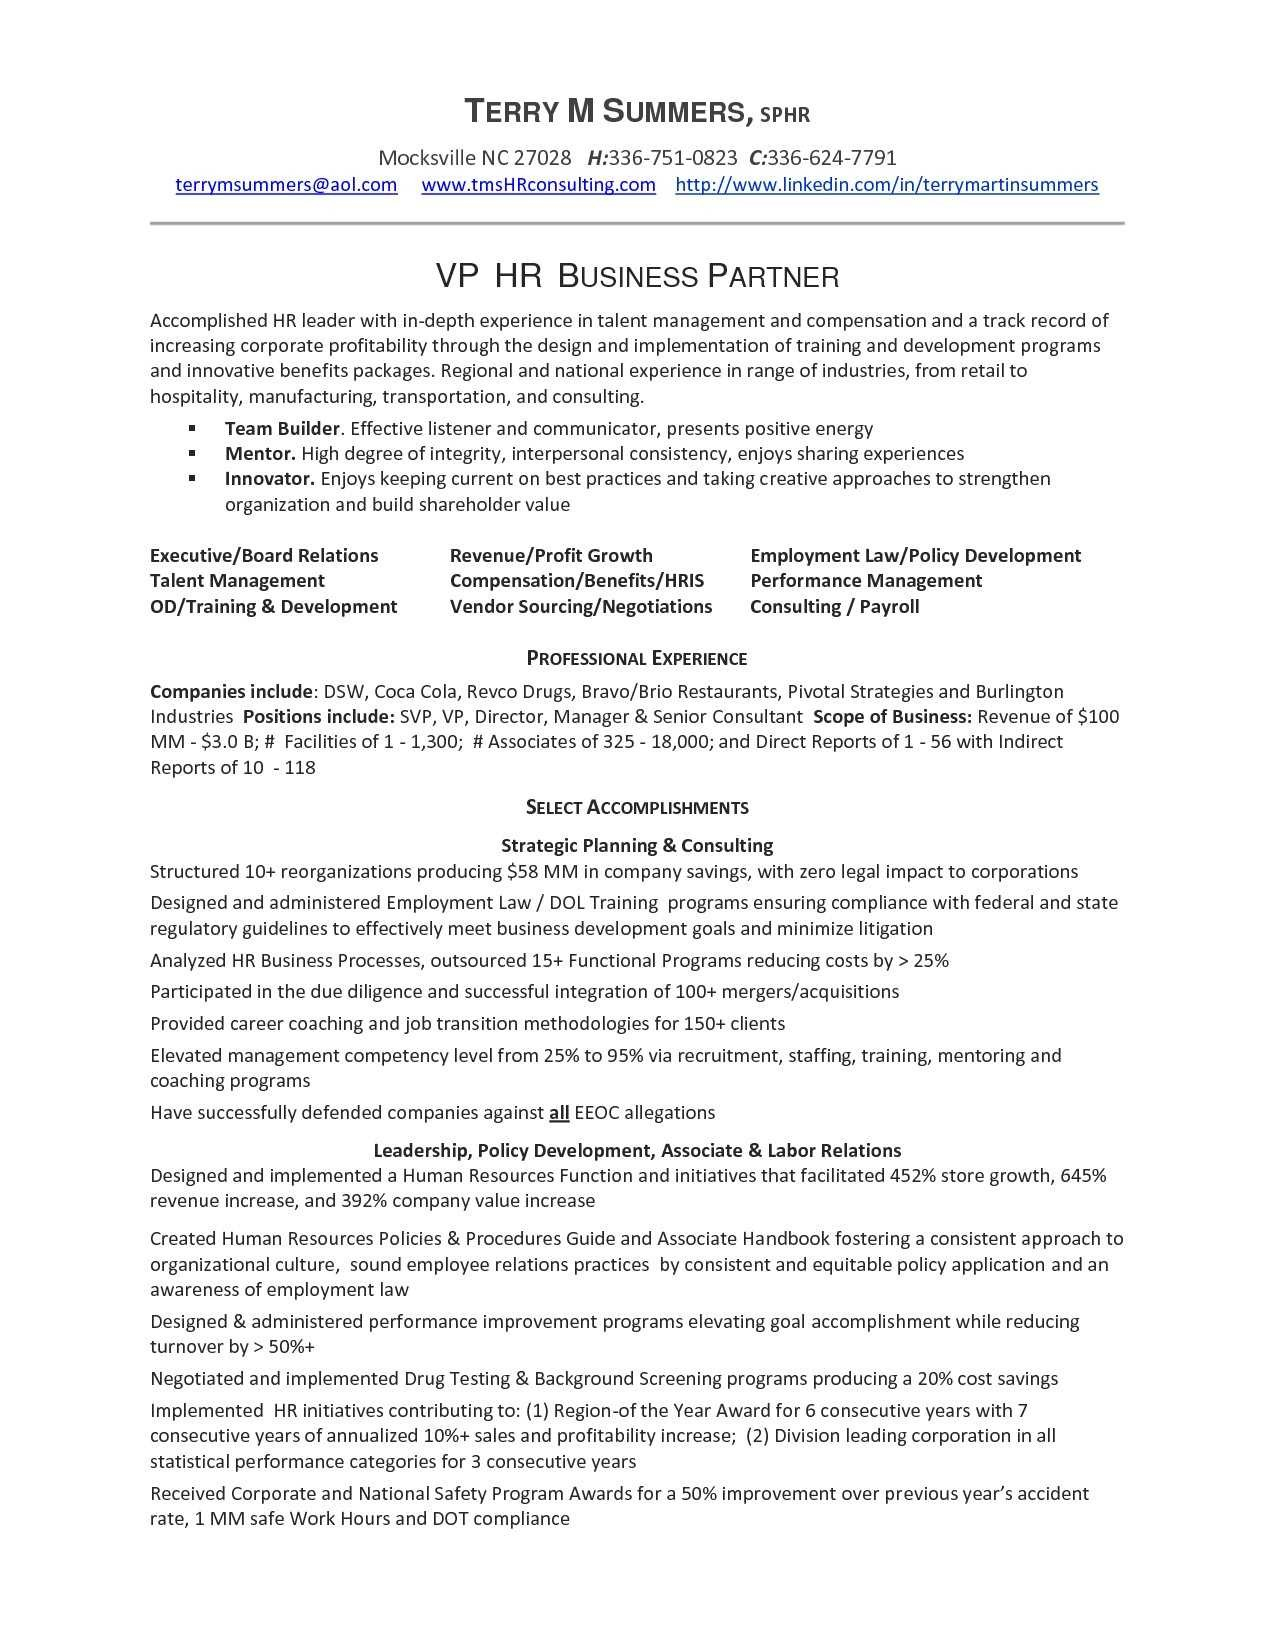 Legal Letter Of Intent Template - Business Letter Intent Template Best Sample Business